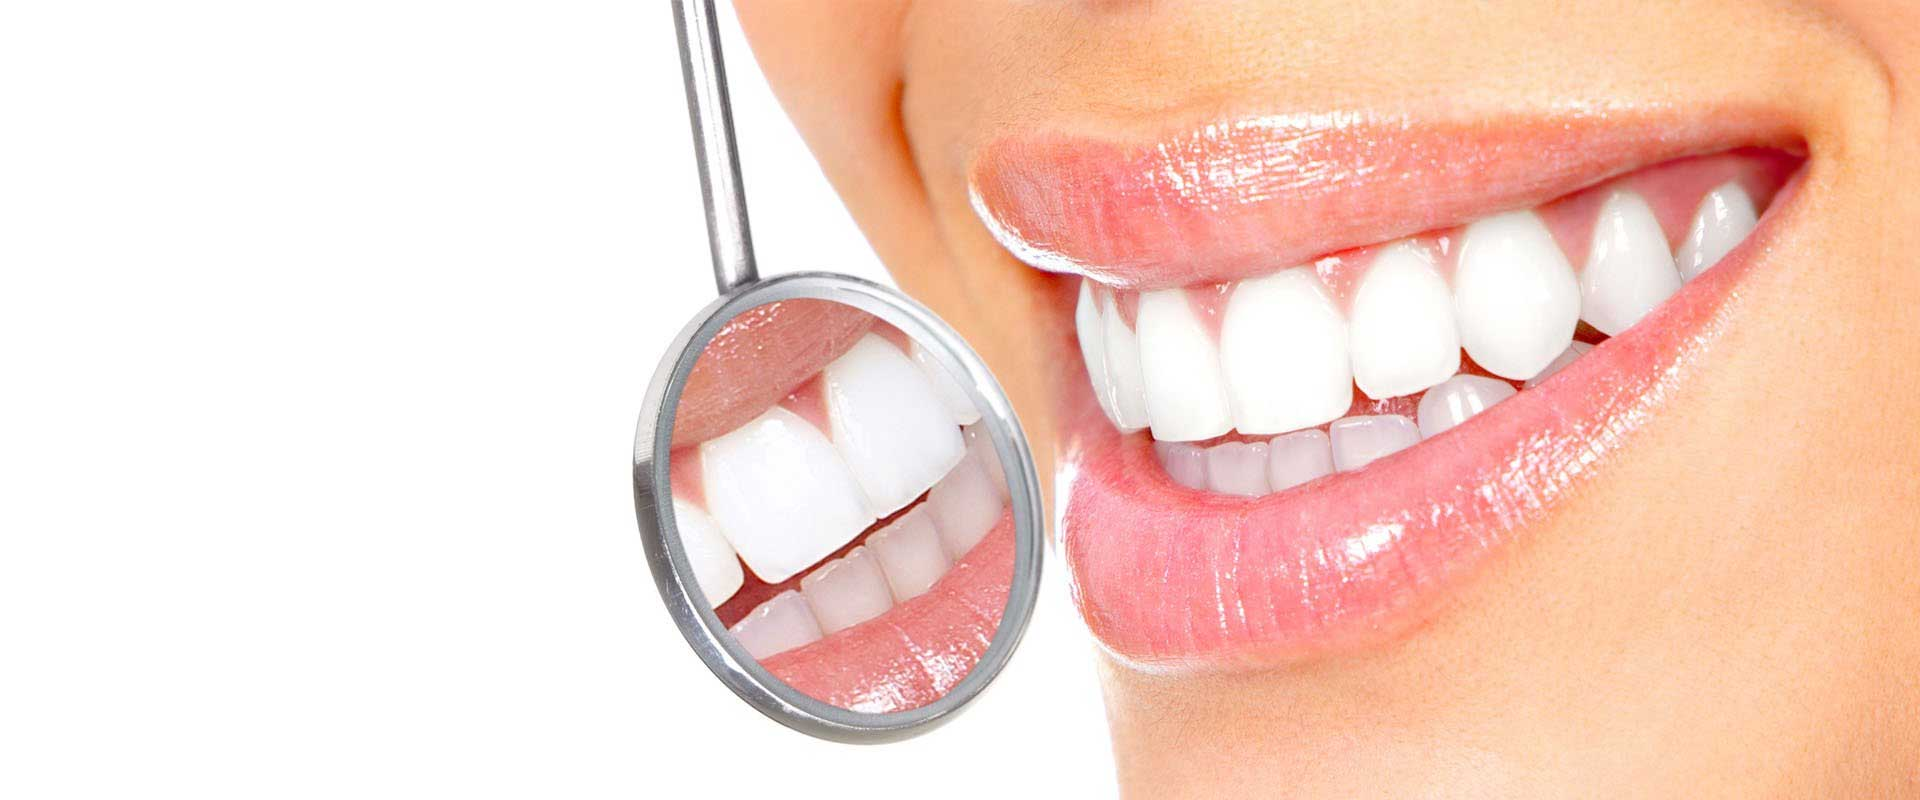 This is why professional dental cleaning is important